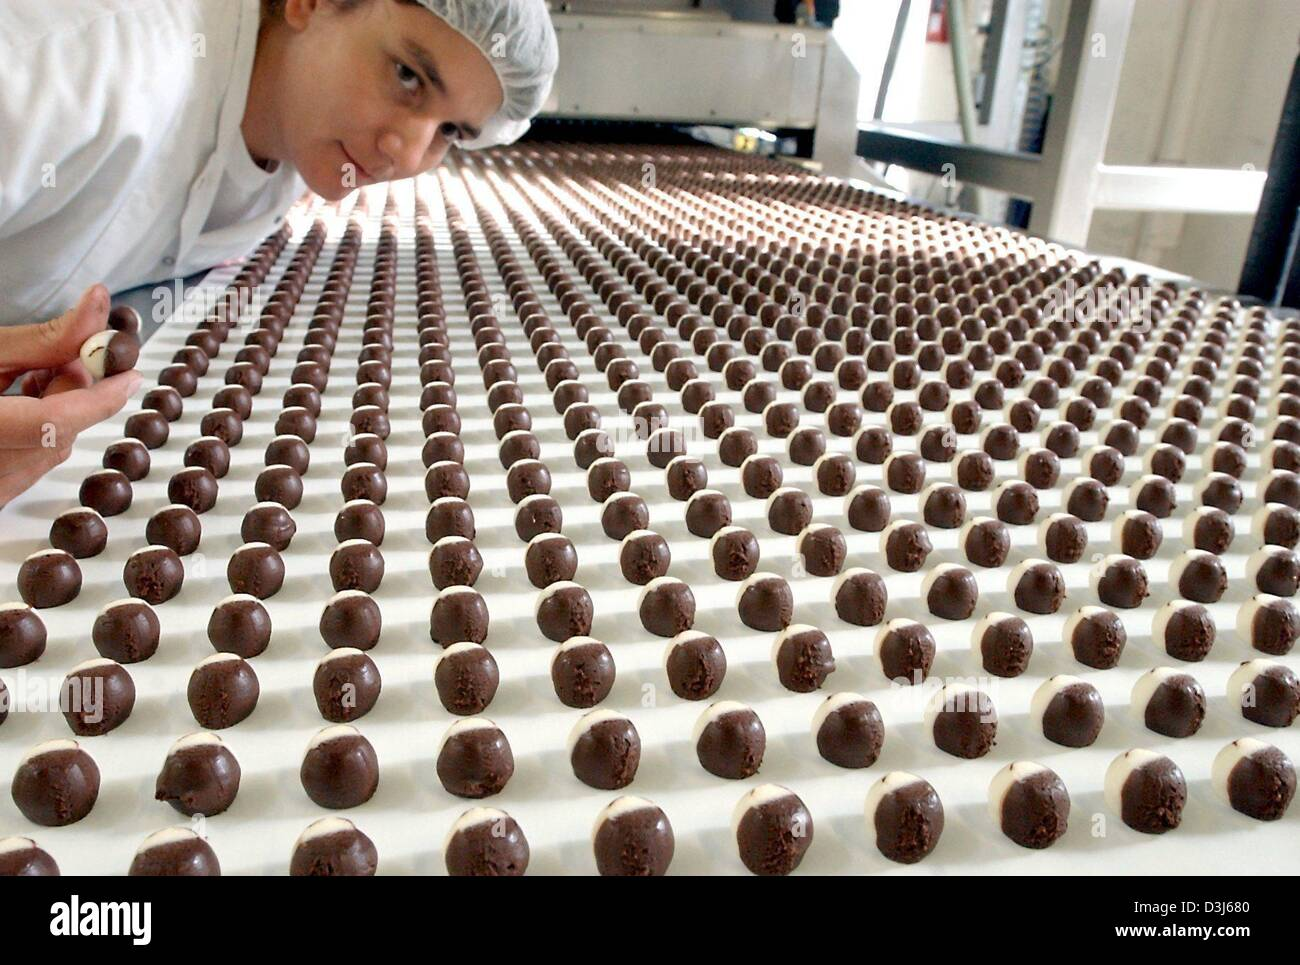 (dpa) - An employee supervises the production process at Germany's oldest chocolate factory, the Halloren chocolate - Stock Image